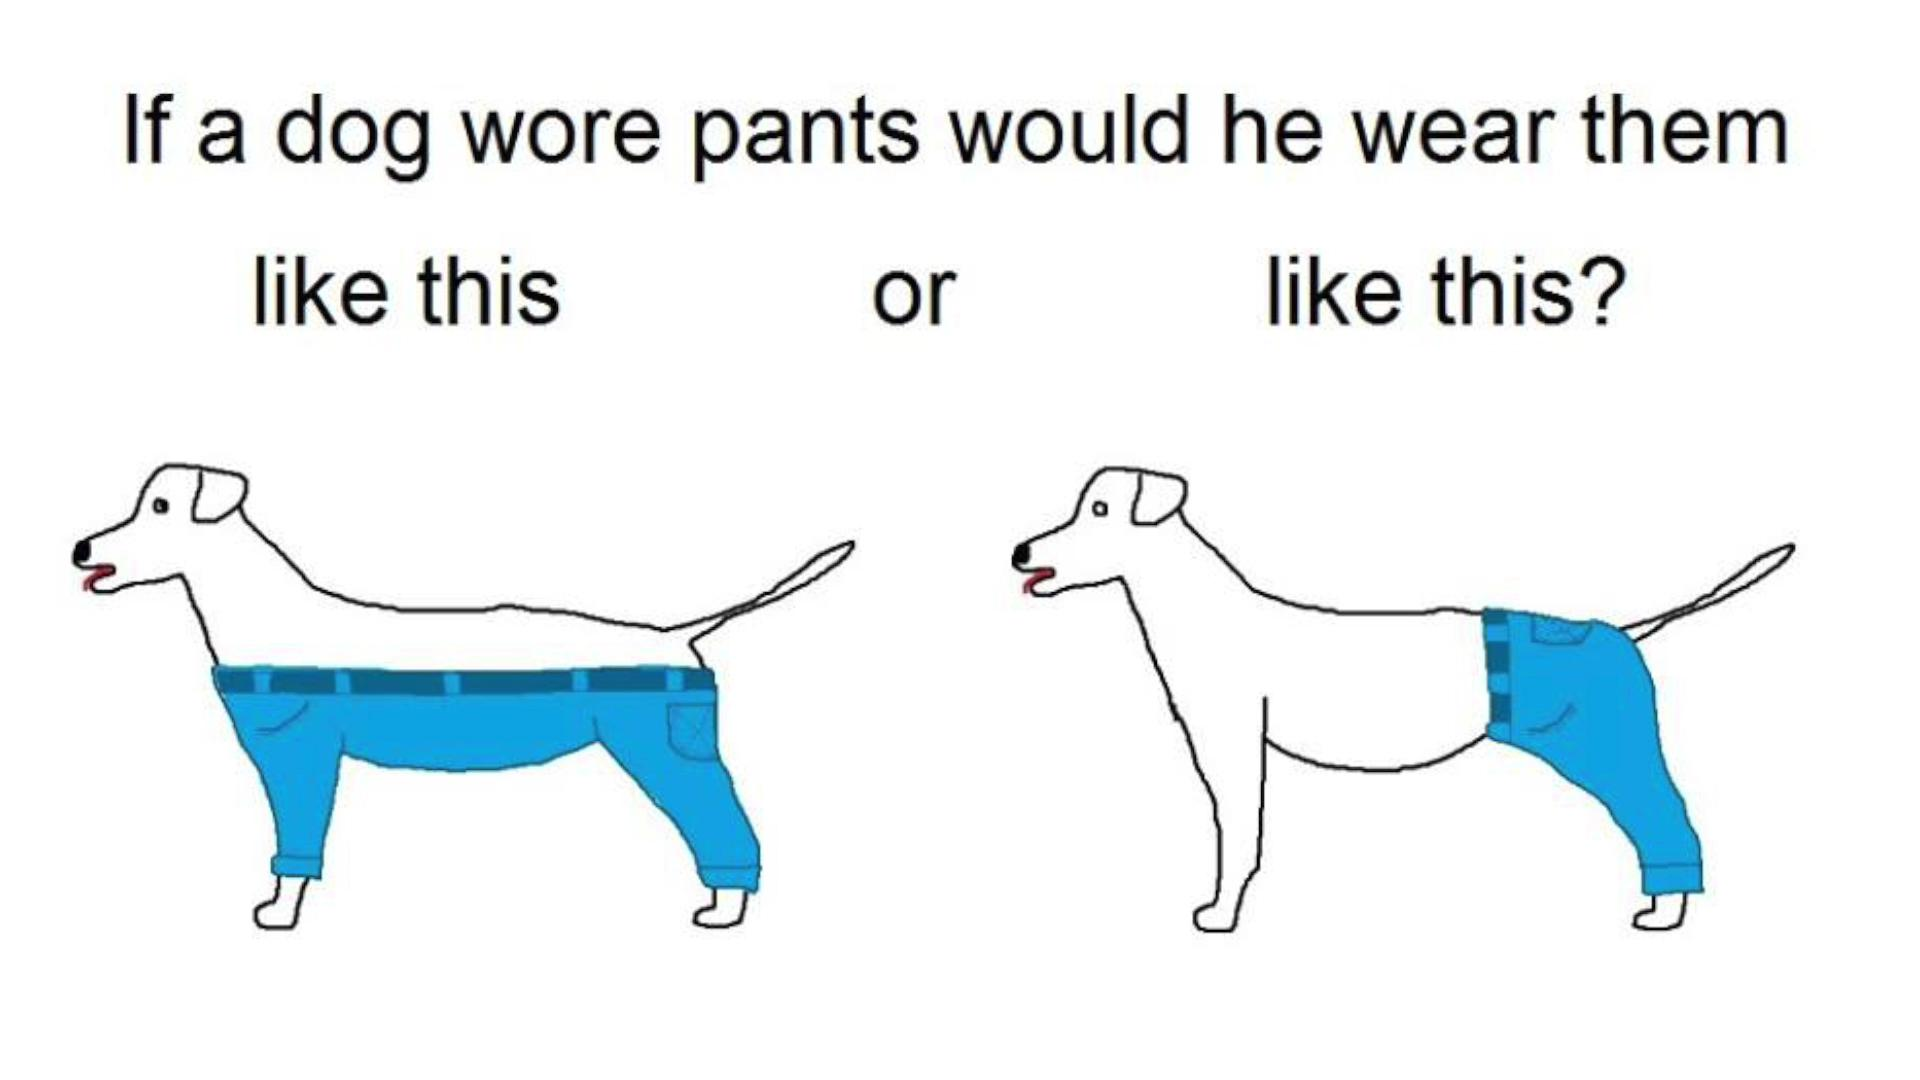 Fullsize Of If A Dog Wore Pants